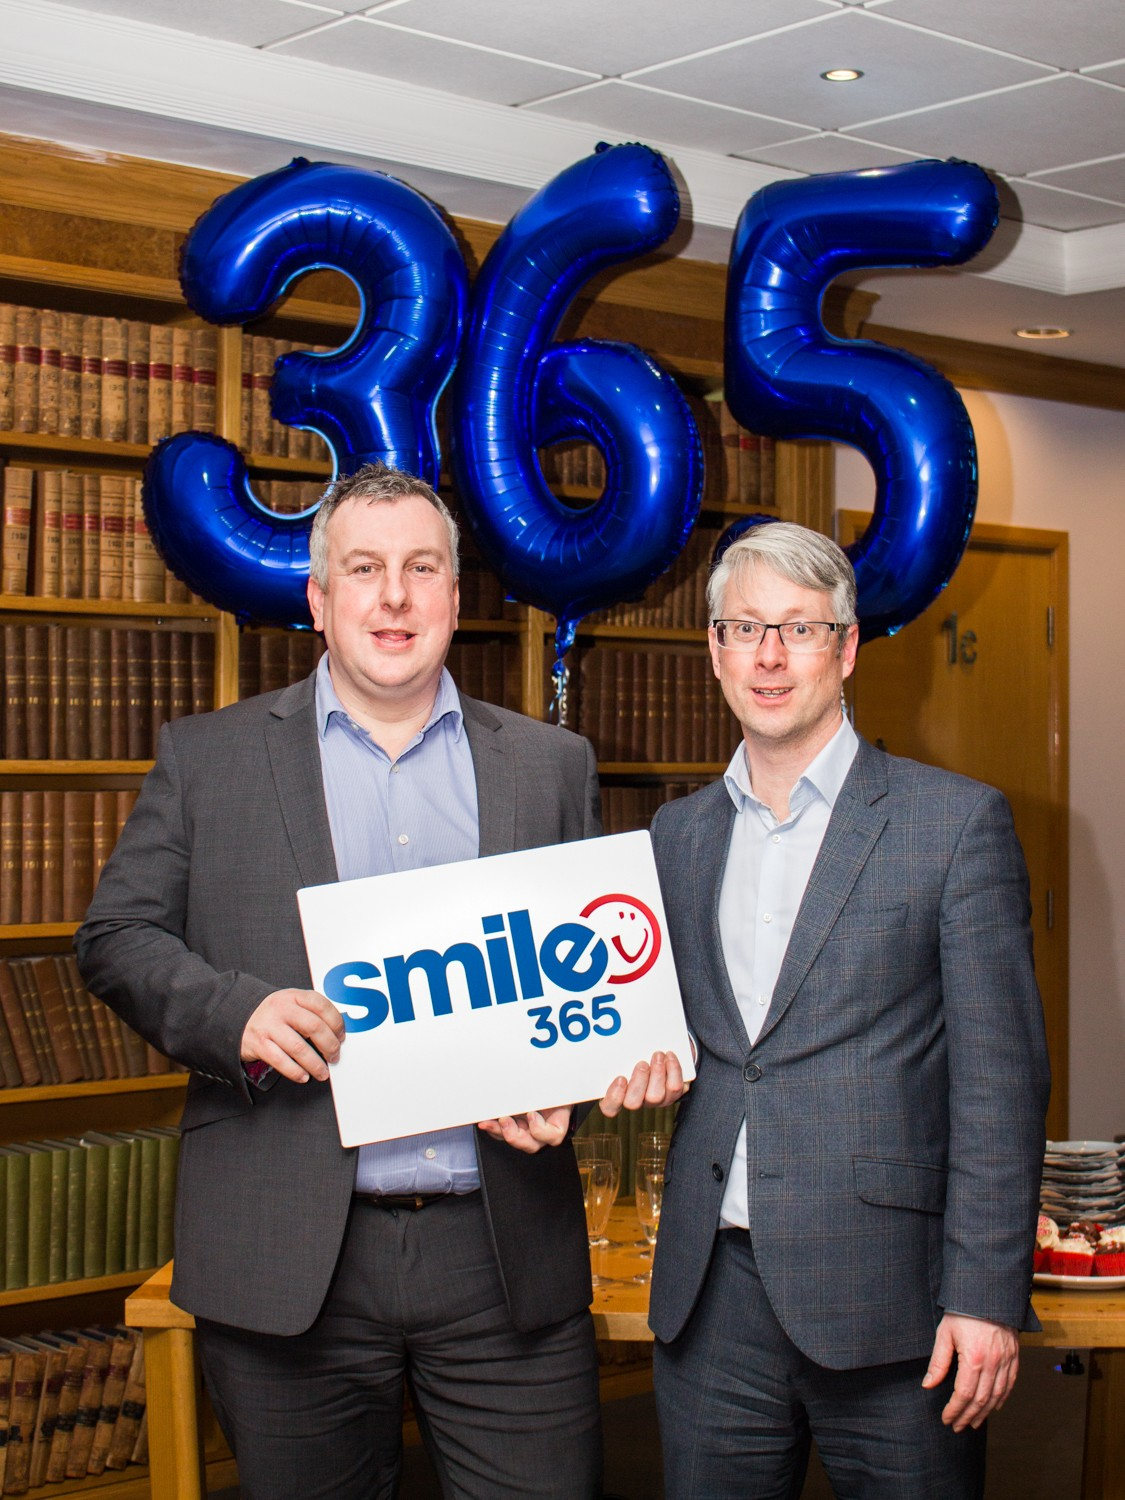 Andy Steele with Sean Maloney from 360 Accountants